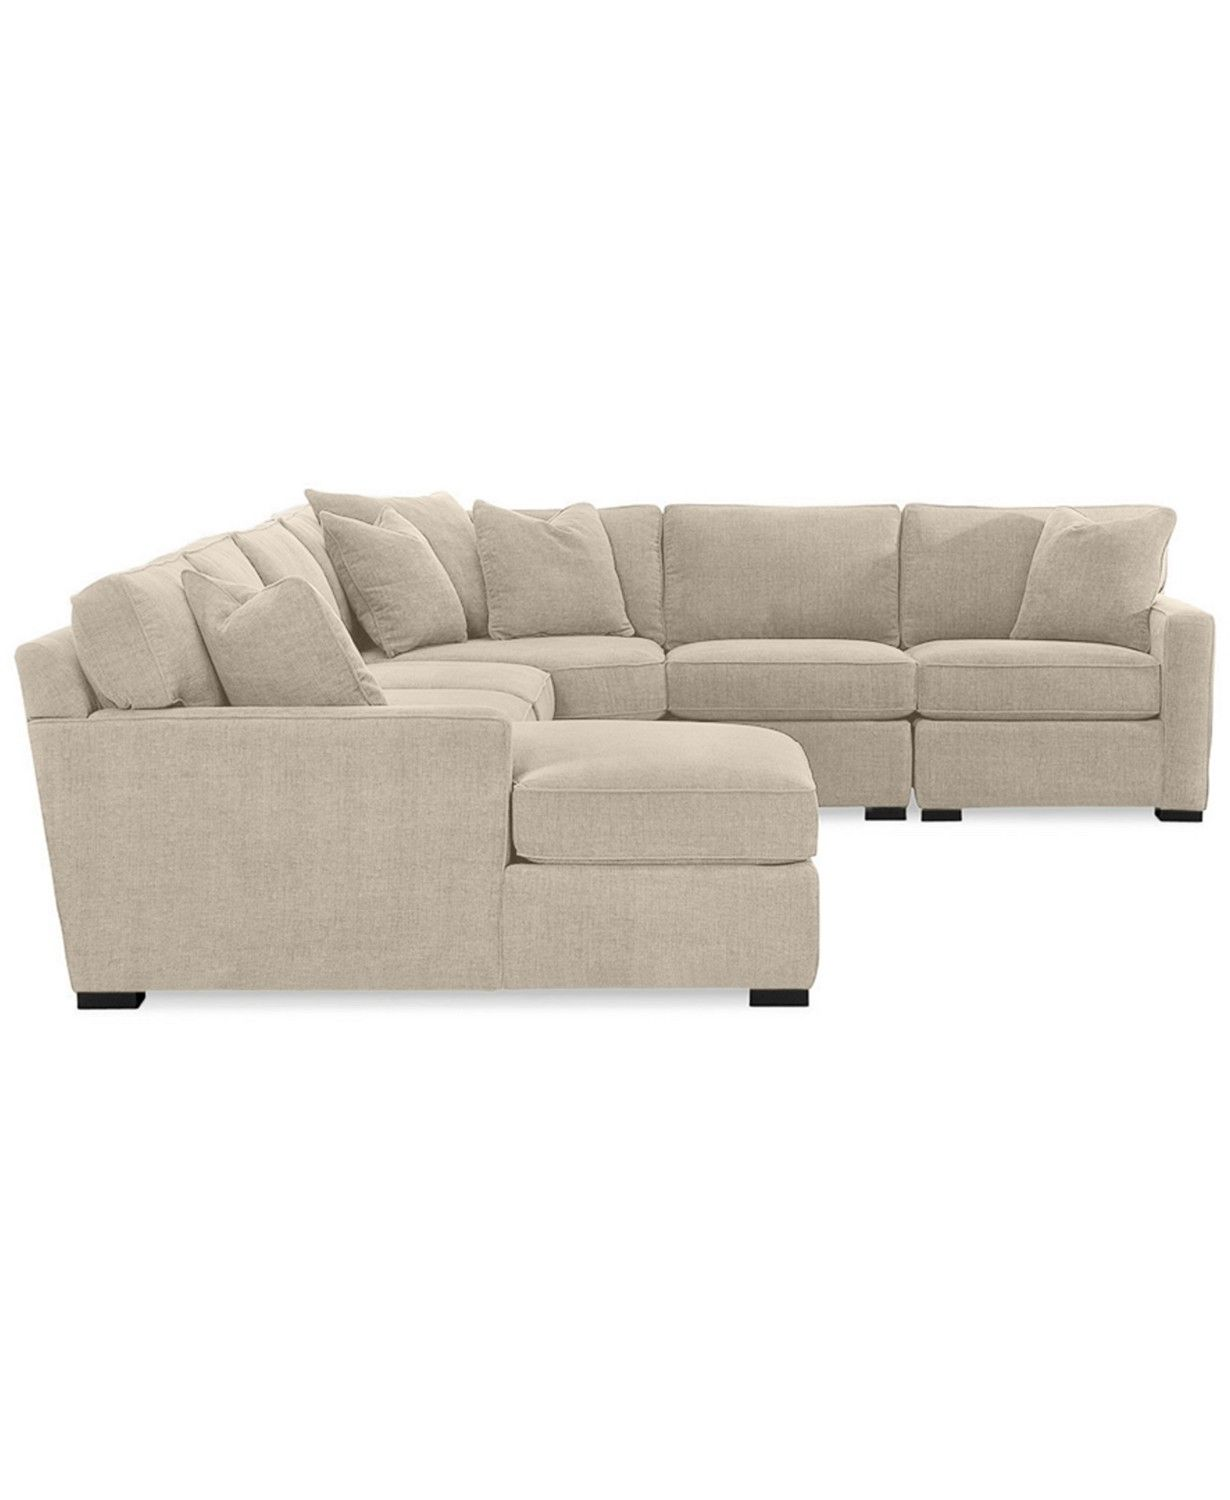 Best Furniture Radley 5 Piece Fabric Chaise Sectional Sofa 400 x 300